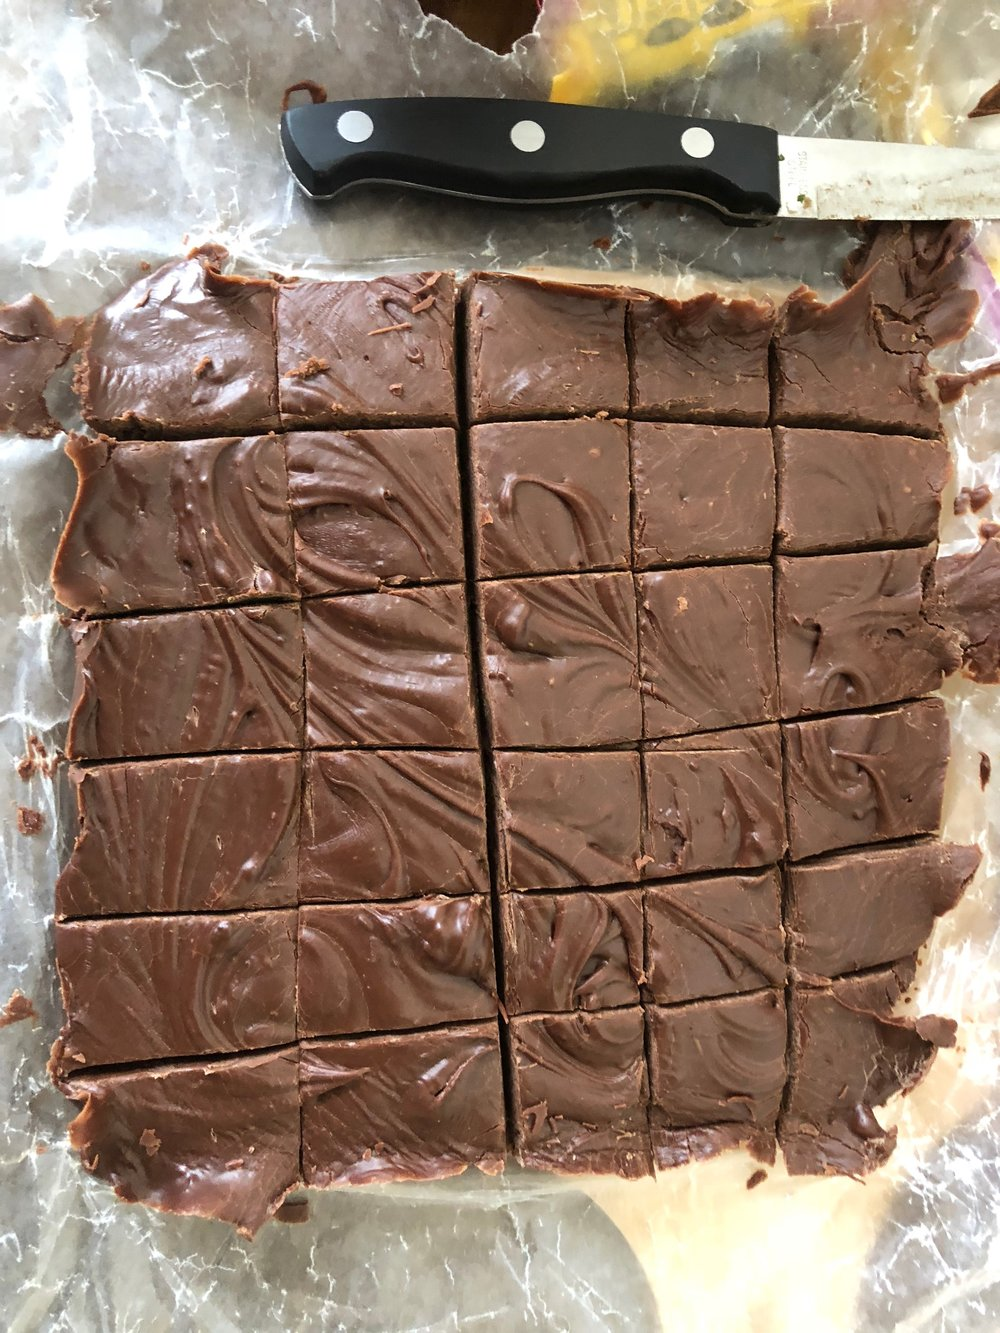 Cut the opposite direction to make approximately uniform squares of fudge.